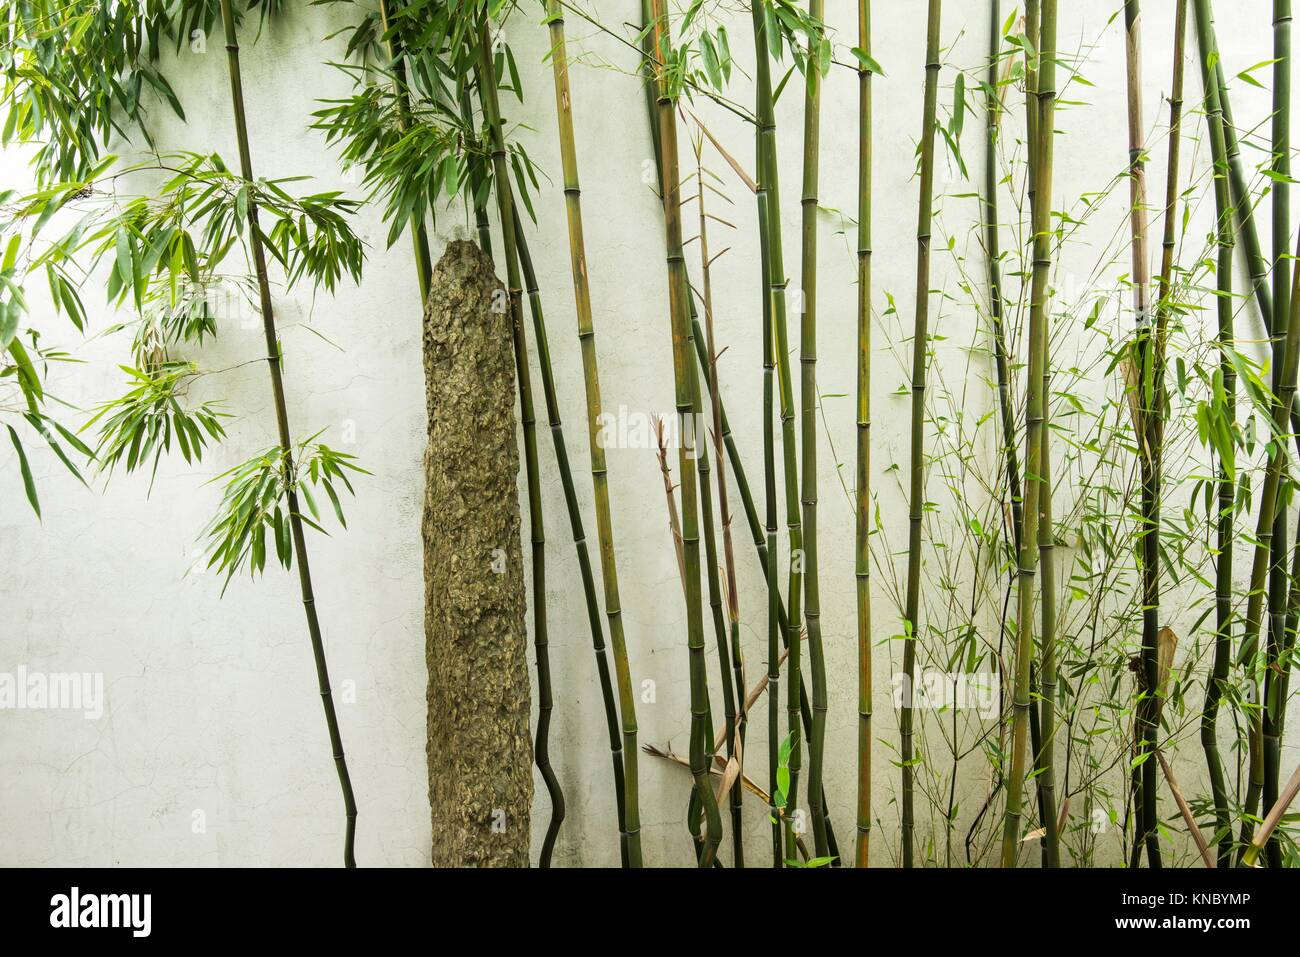 Bamboo Canada Bamboo By A Wall At Dr Sun Yat Sen Classical Chinese Garden In